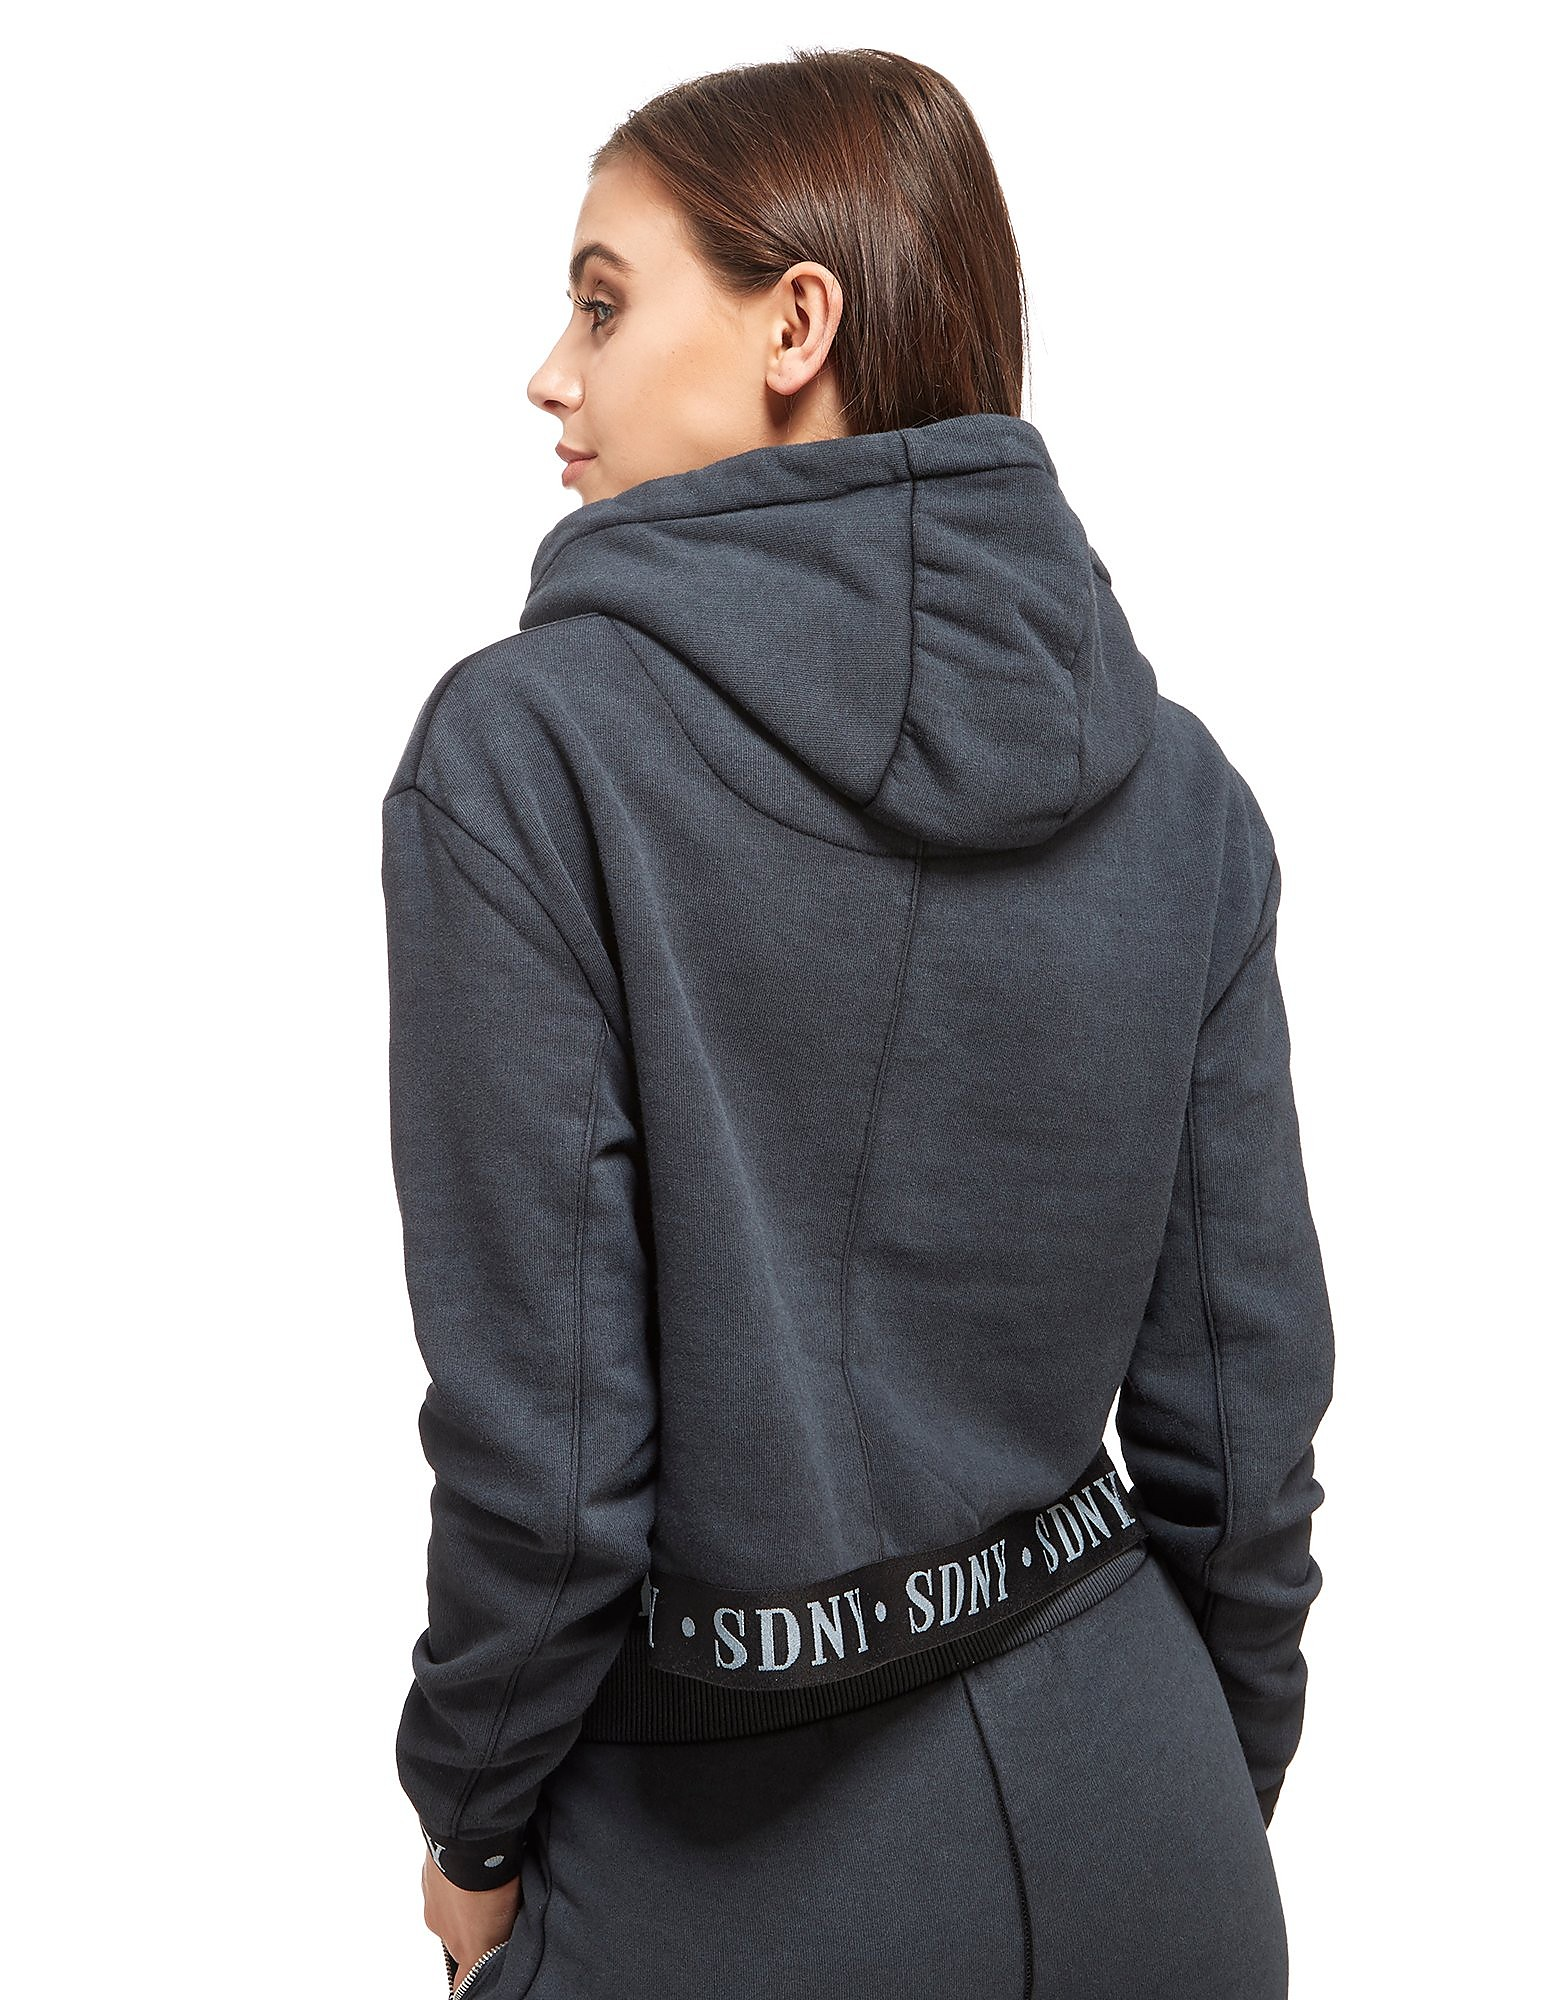 Supply & Demand Boxy Half Zip Hoody